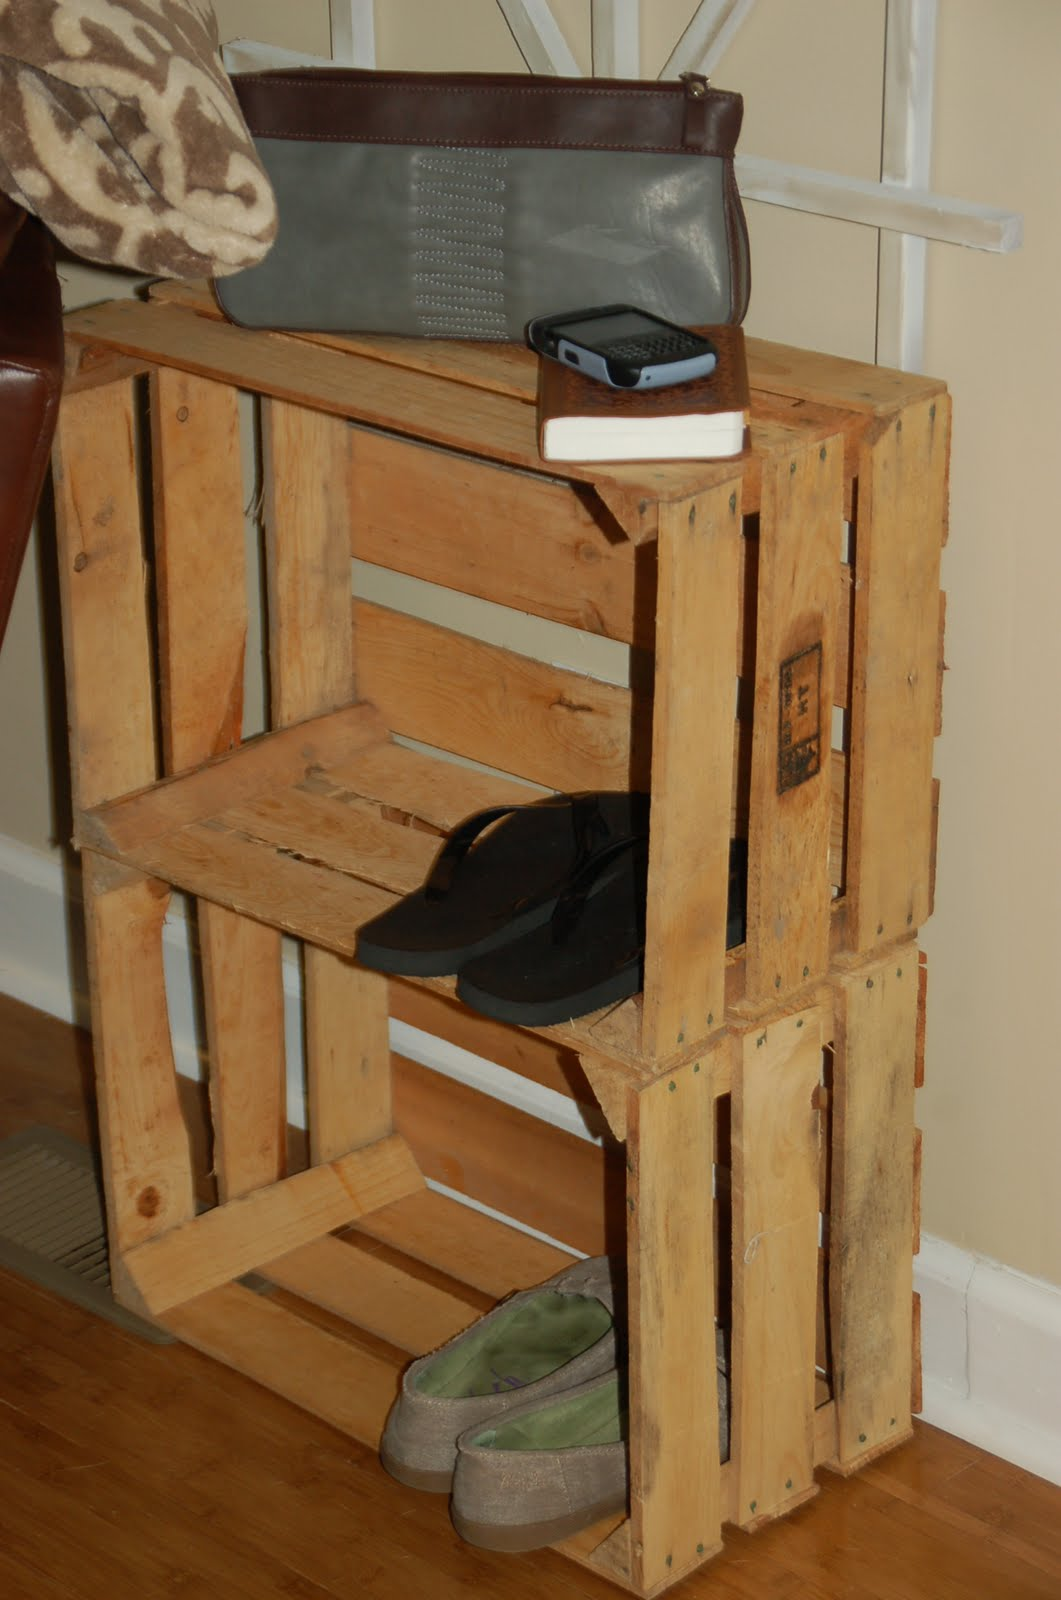 wooden crates as shelves thrifty finds and redesigns wooden crate shelves 811